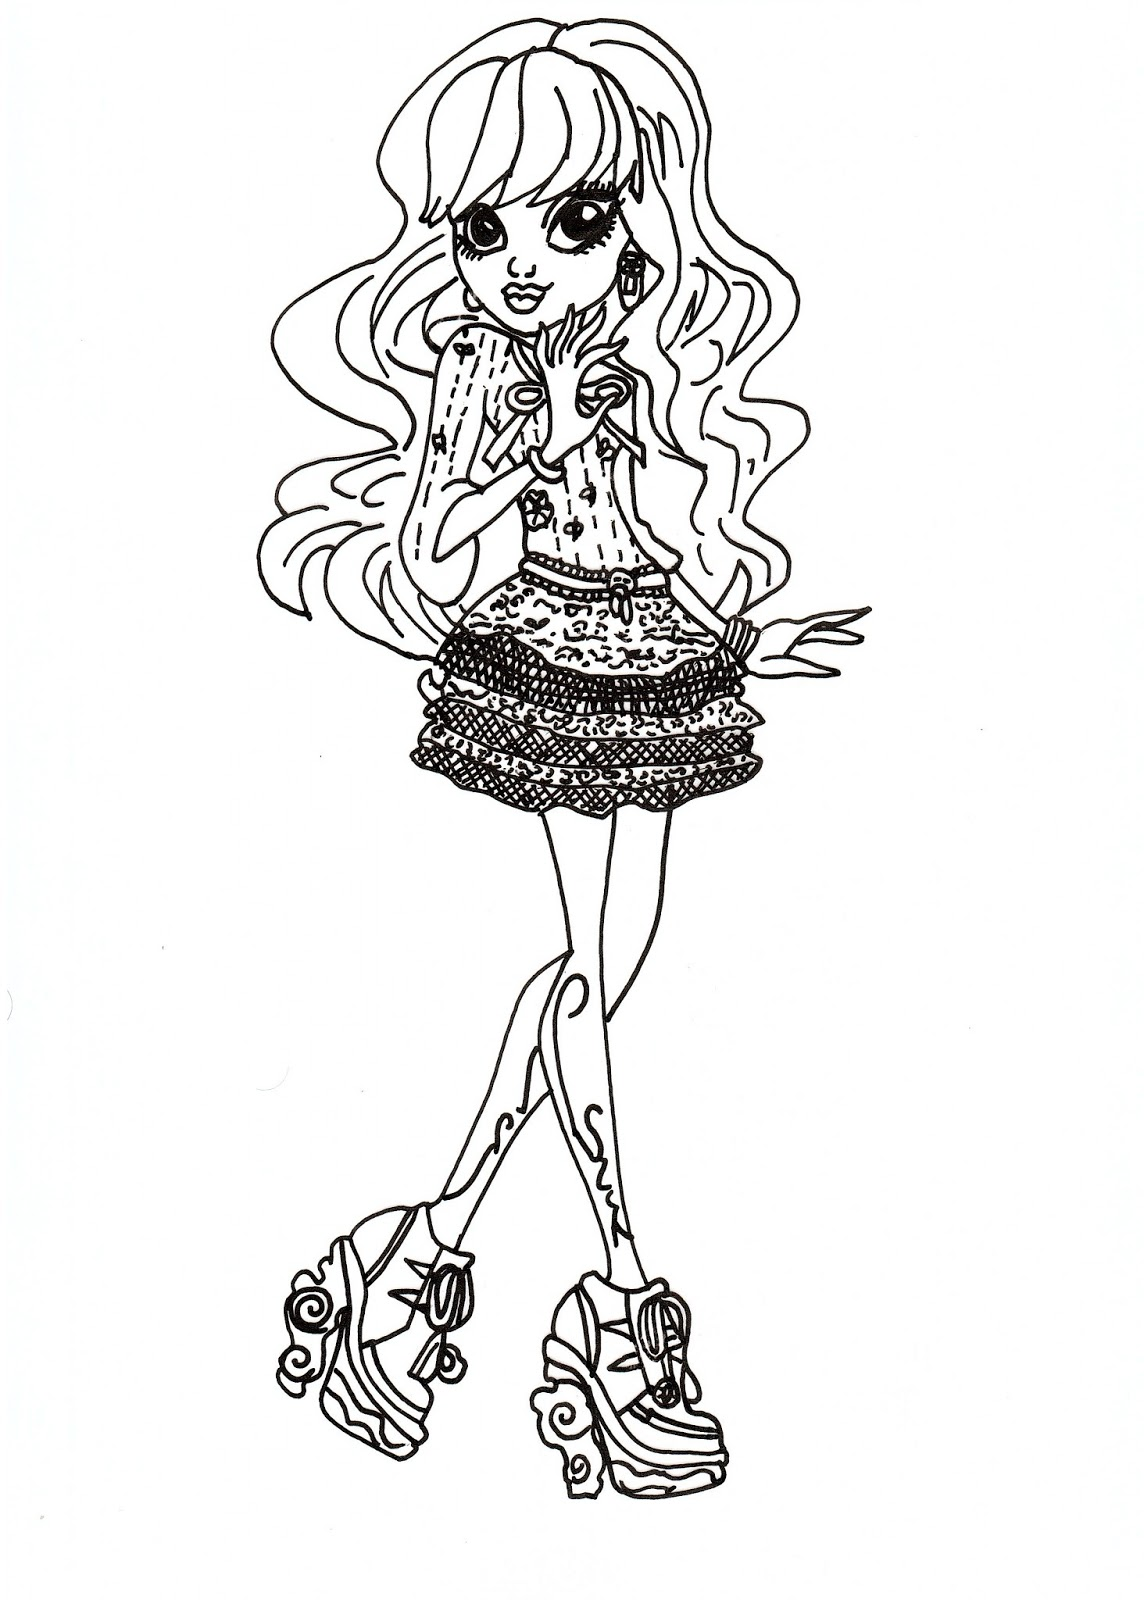 Monster High Ausmalbilder Catty Noir : High Printing Foot Freedomtraining Co